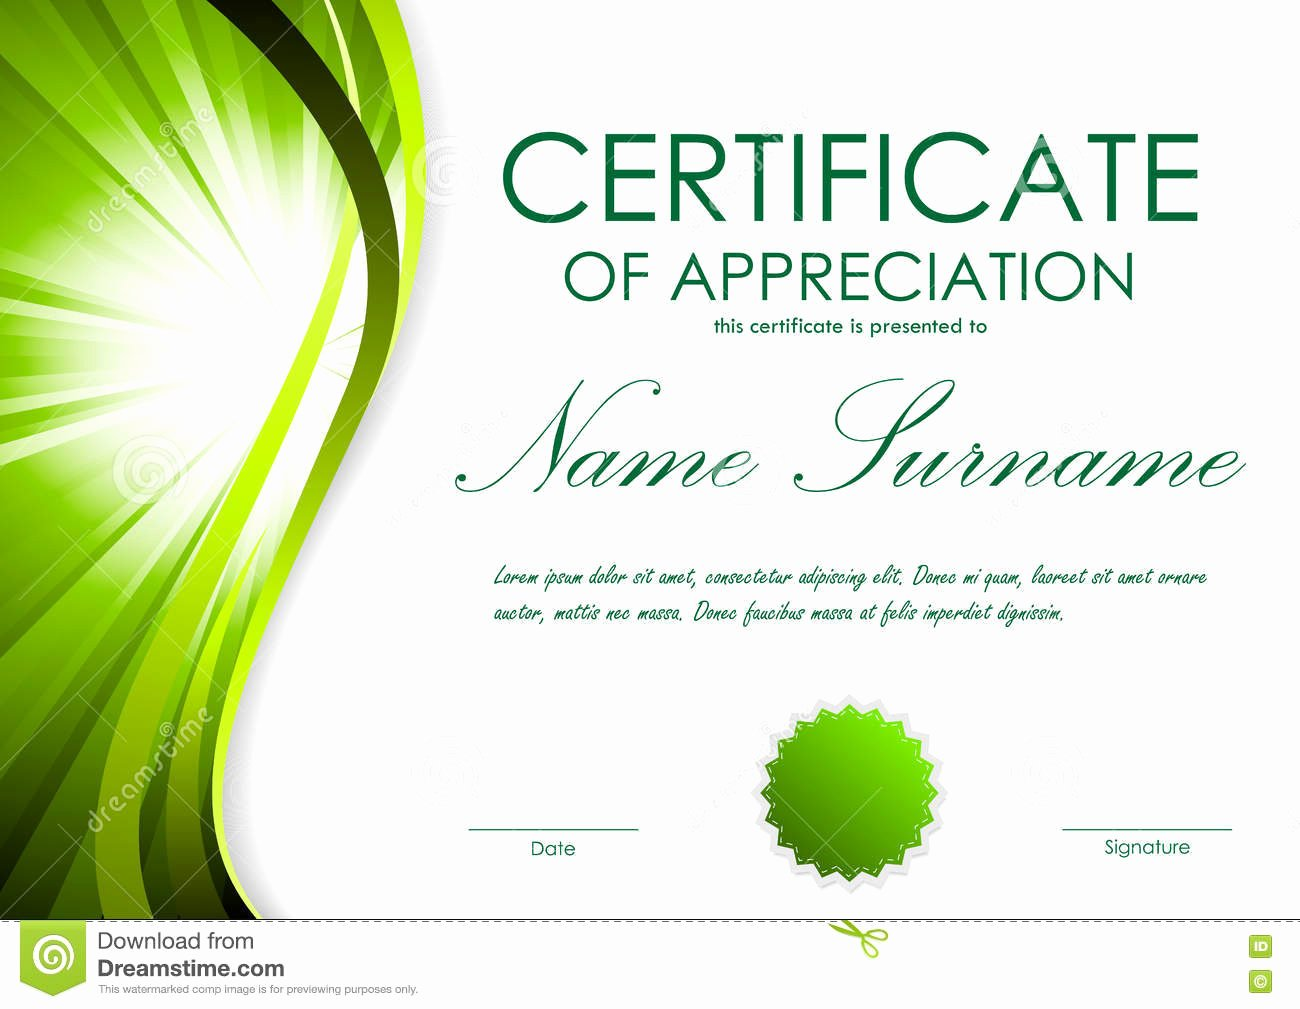 Certificate Certificate Appreciation Template